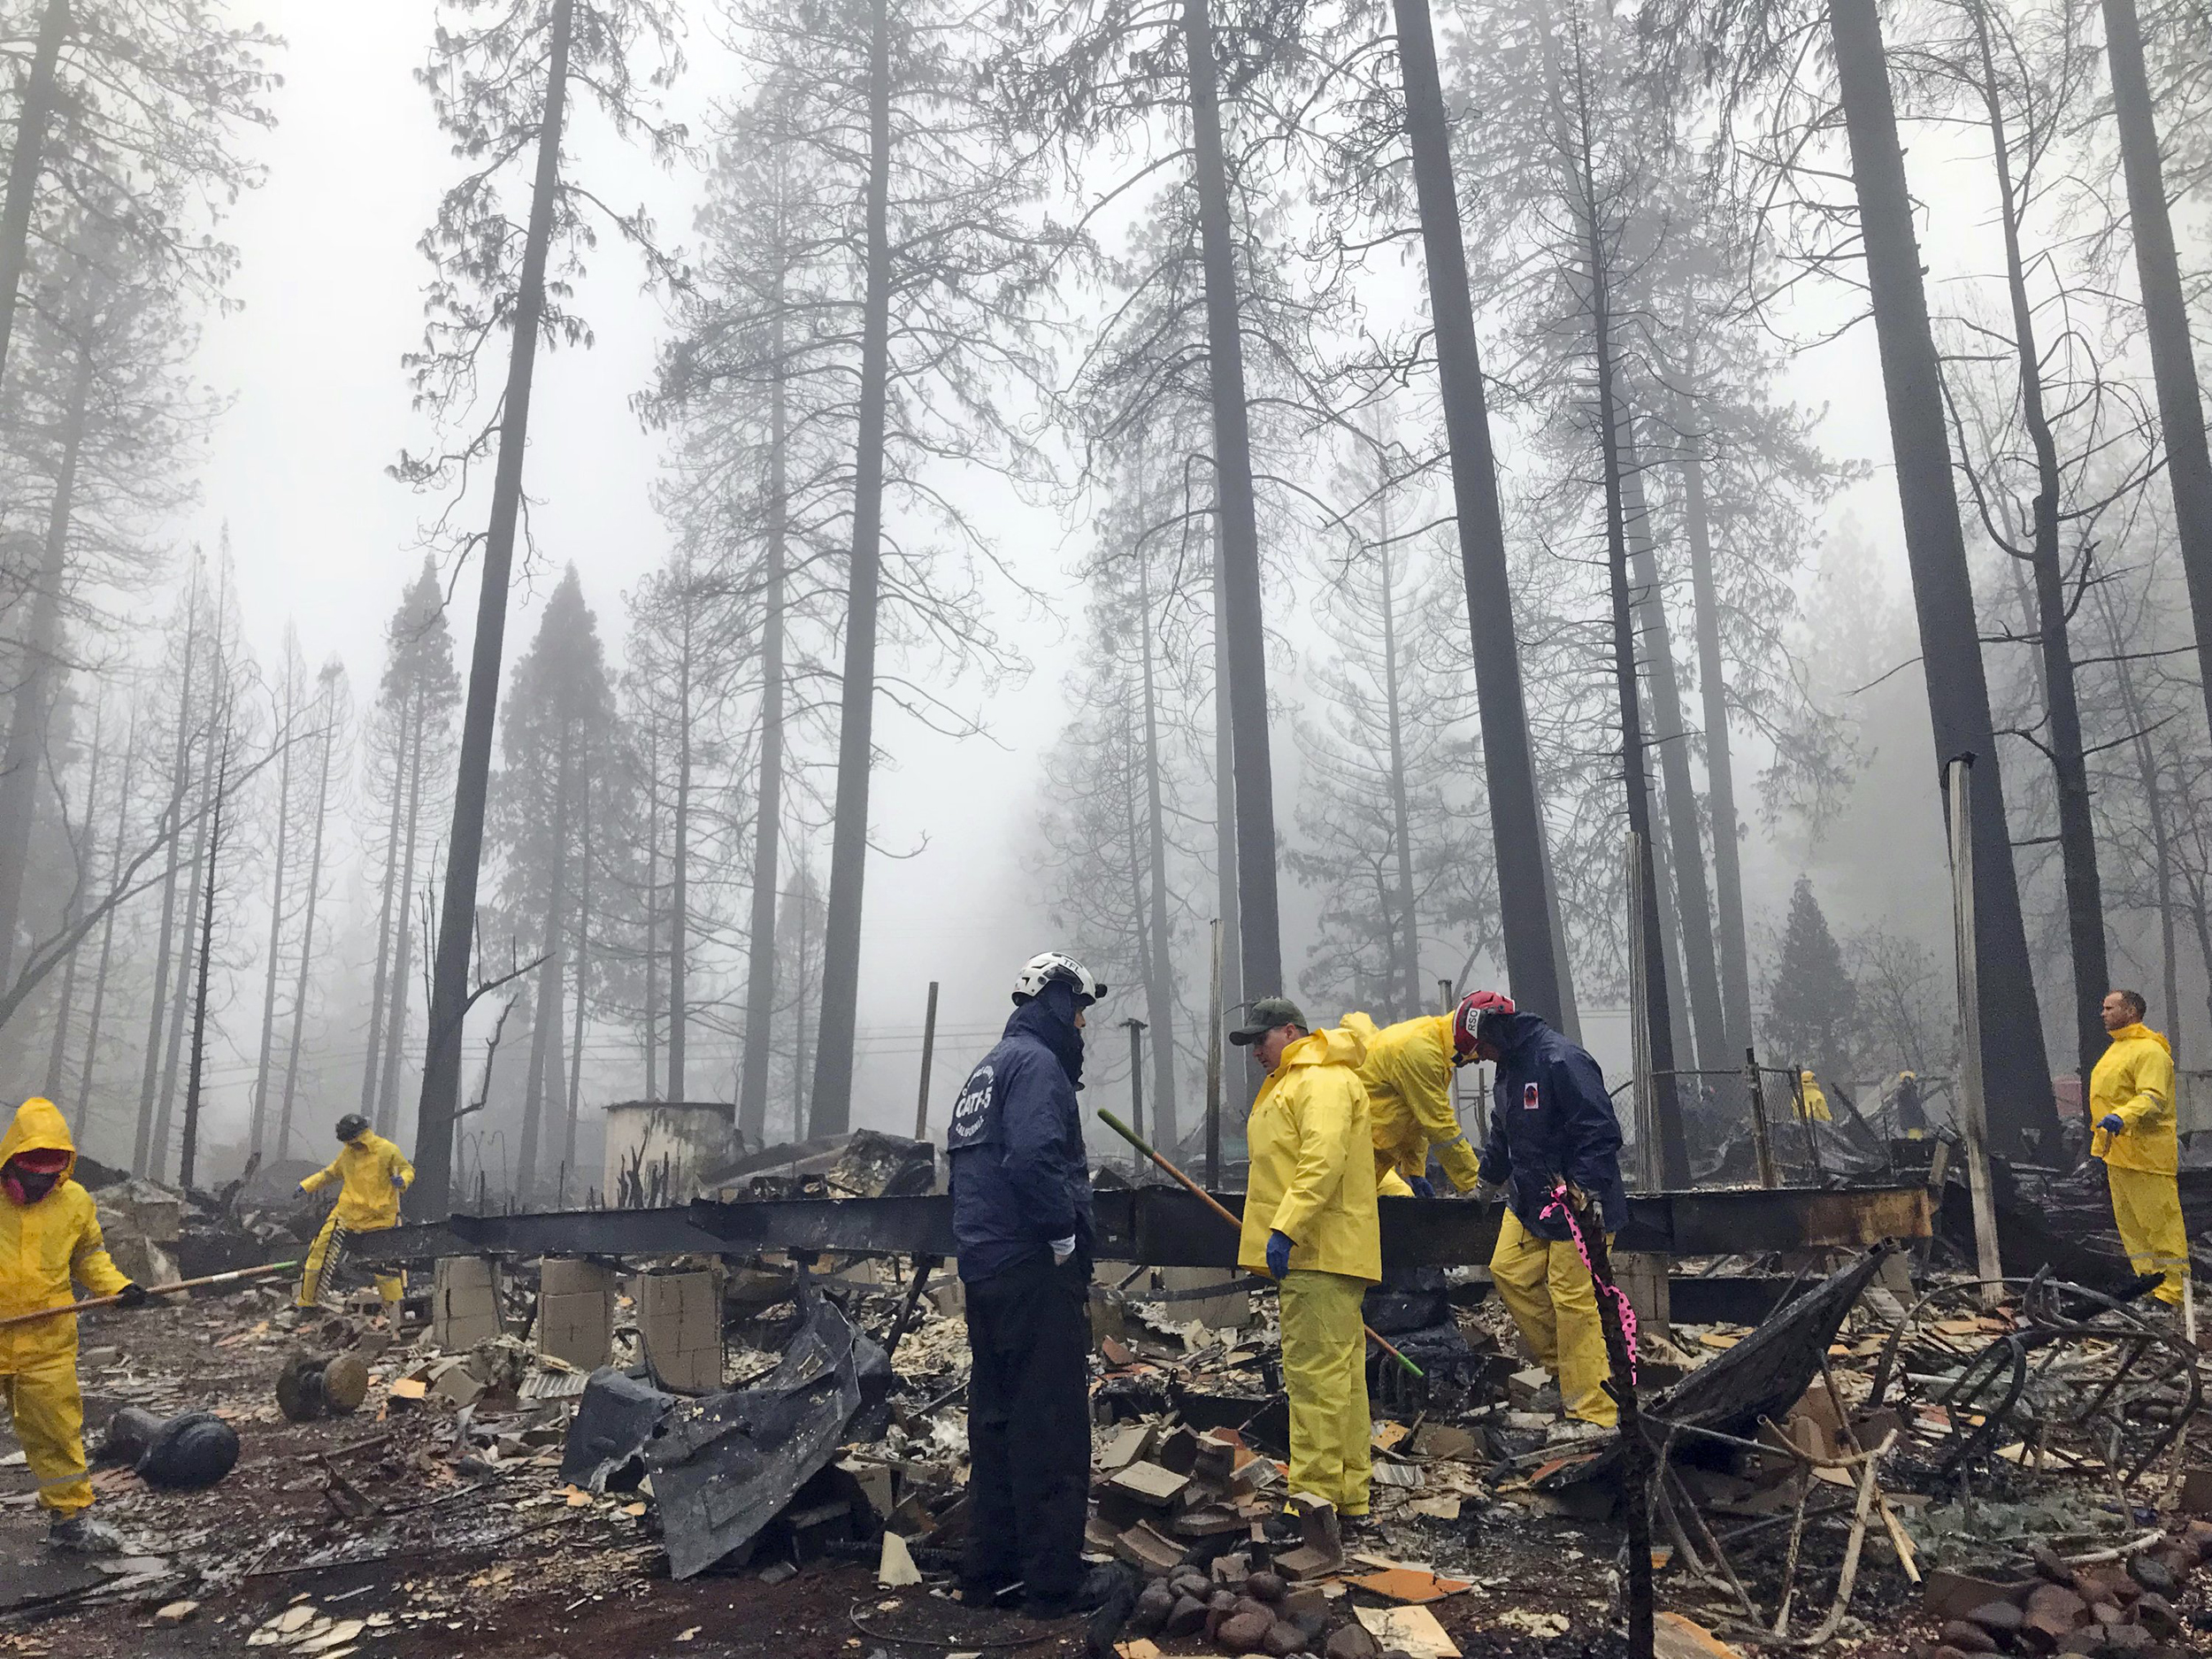 After burning for more than 2 weeks, California Camp fire fully contained